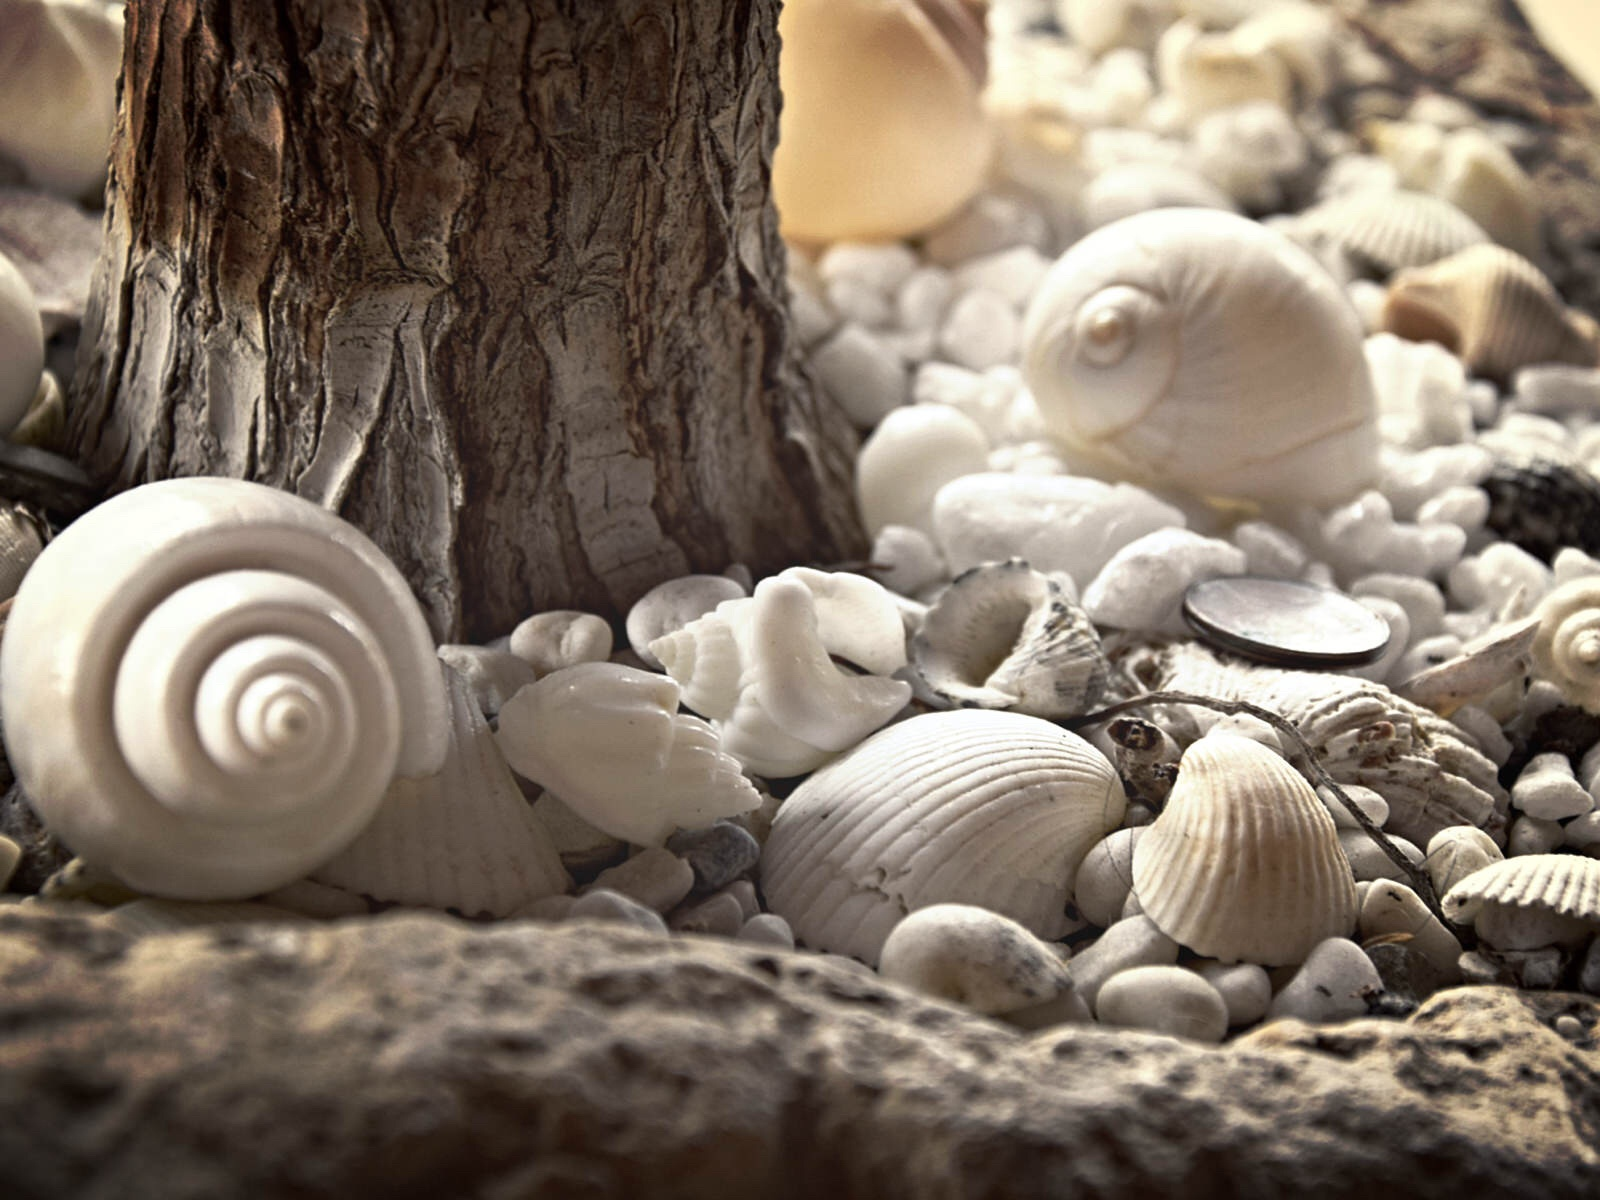 A meadow of shells by Diana